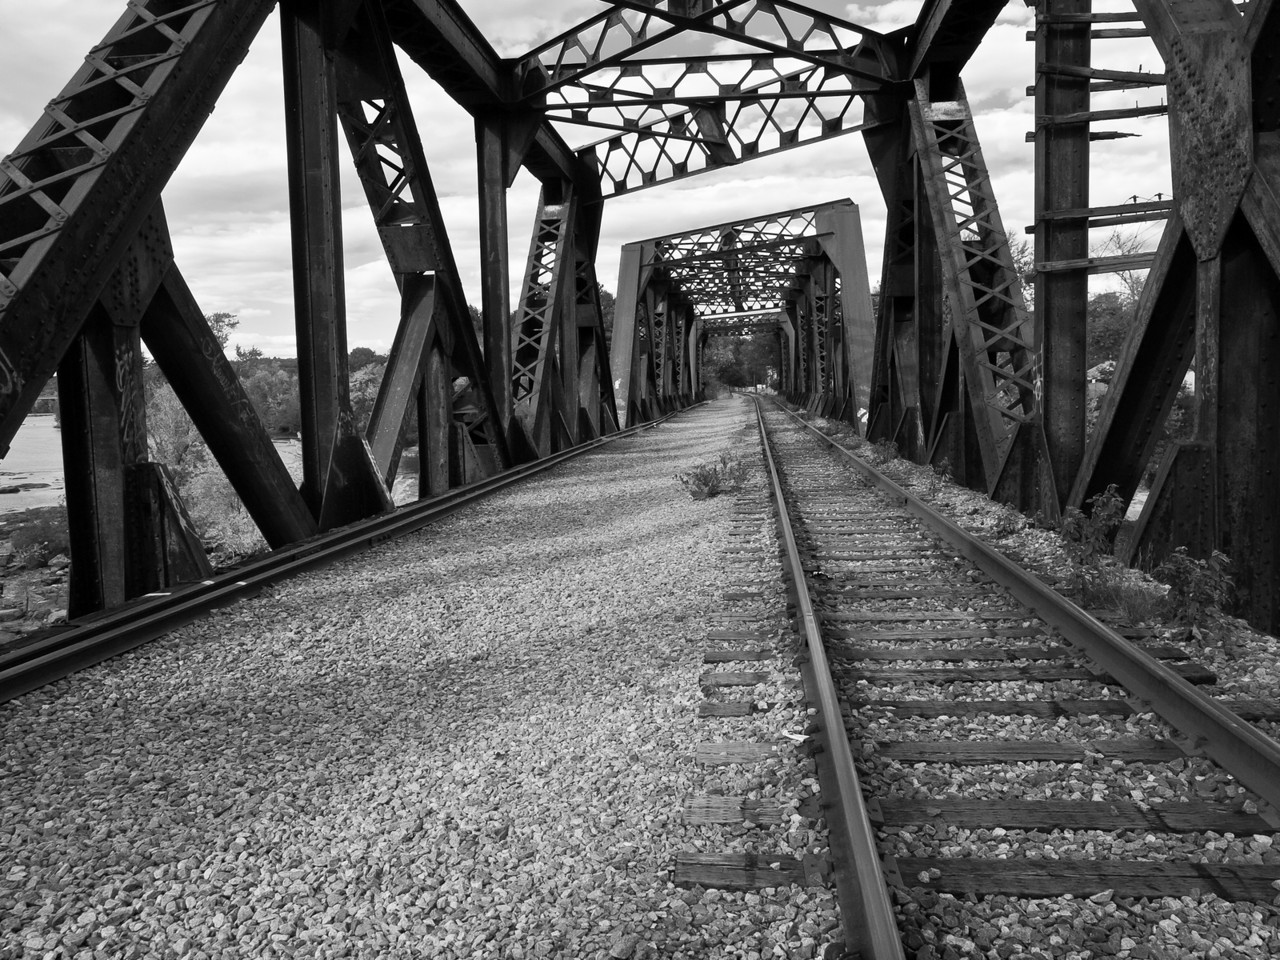 Finally shot this disused (except for foot traffic) train tressle bridge over the Merrimack in Manchester NH.  I've only driven by it thousands of times.